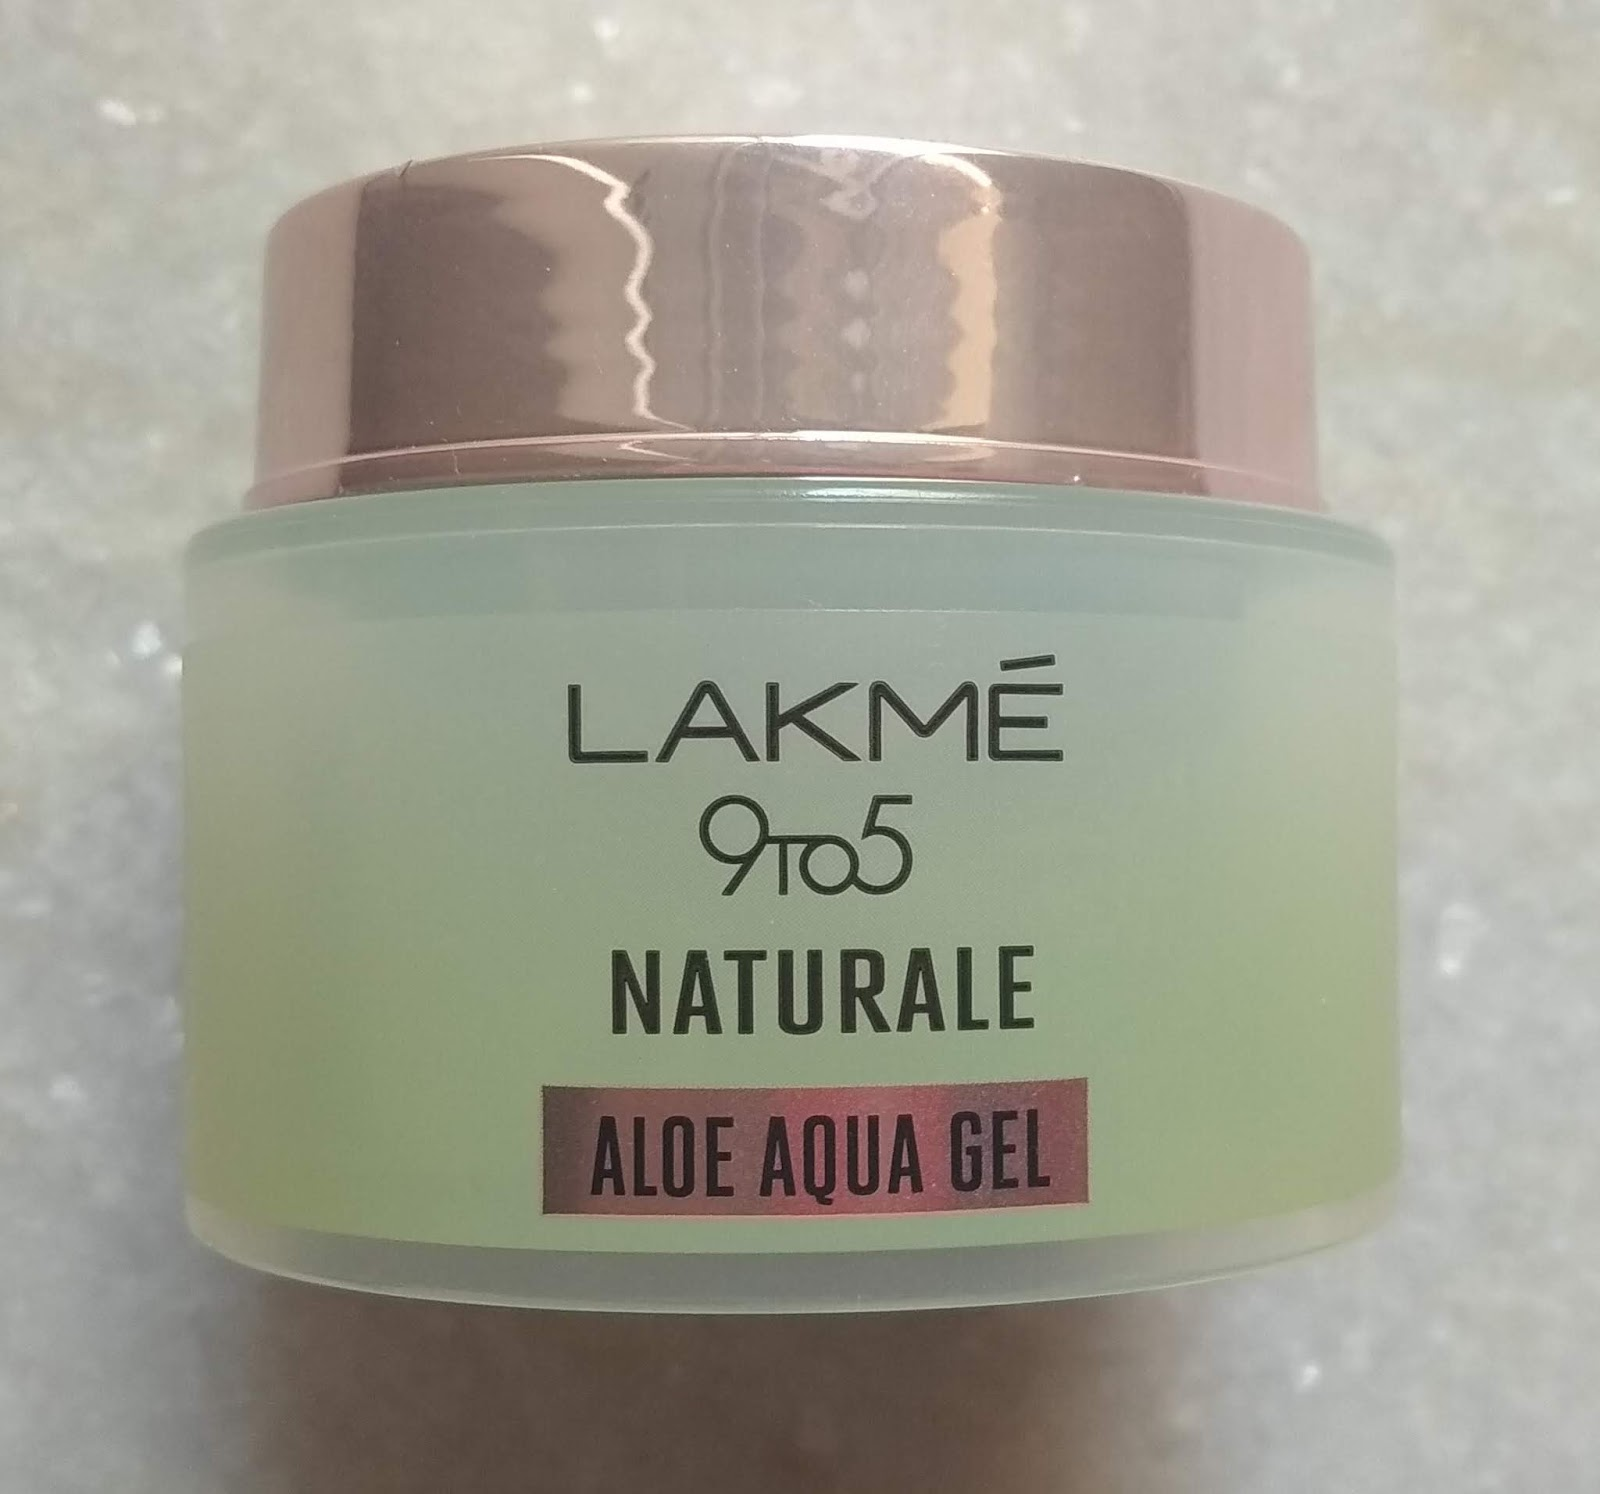 Lakme 9 To 5 Naturale Aloe Aqua Gel Review Peachypinkpretty